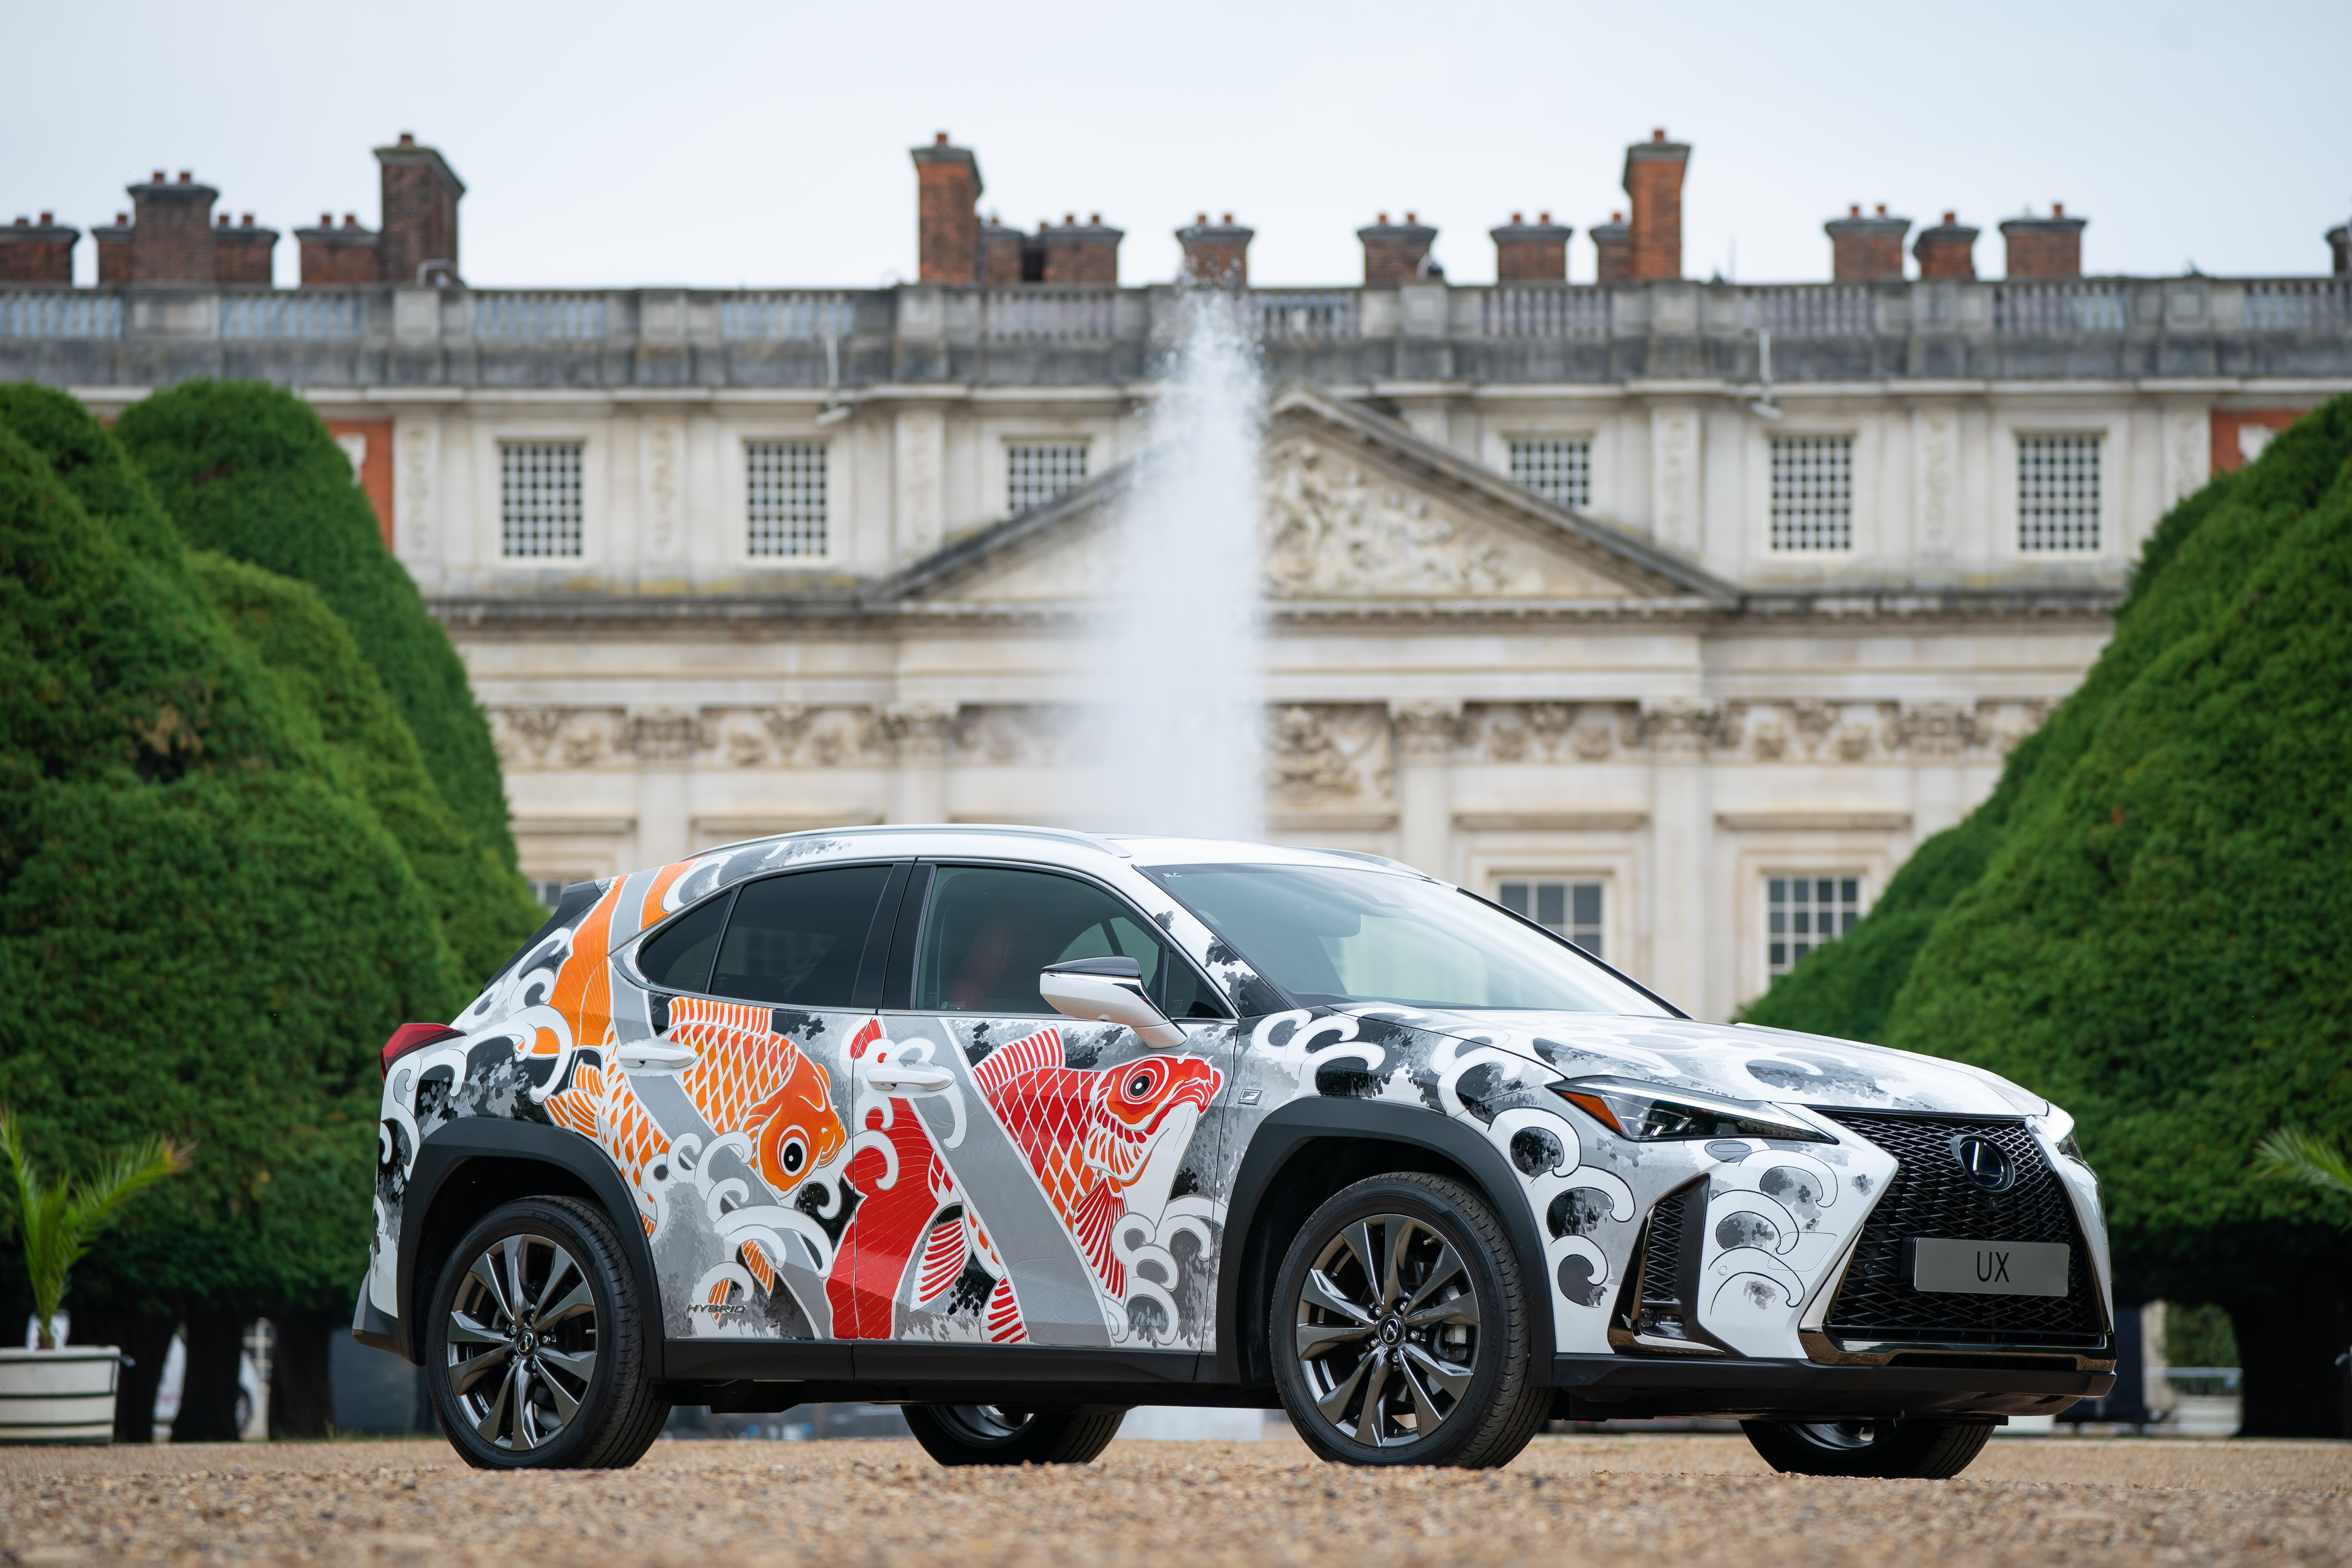 <p>The world's first tattoed car, a Lexus UX compact SUV, in the East Garden at Hampton Court Palace, south west London, ahead of the Hampton Court Palace Artisan Fair which begins on Friday. Artist Claudia De Sabe will tattoo the UX bonnet with 3 bespoke designs each day. Picture date: Thursday June 17, 2021.</p>